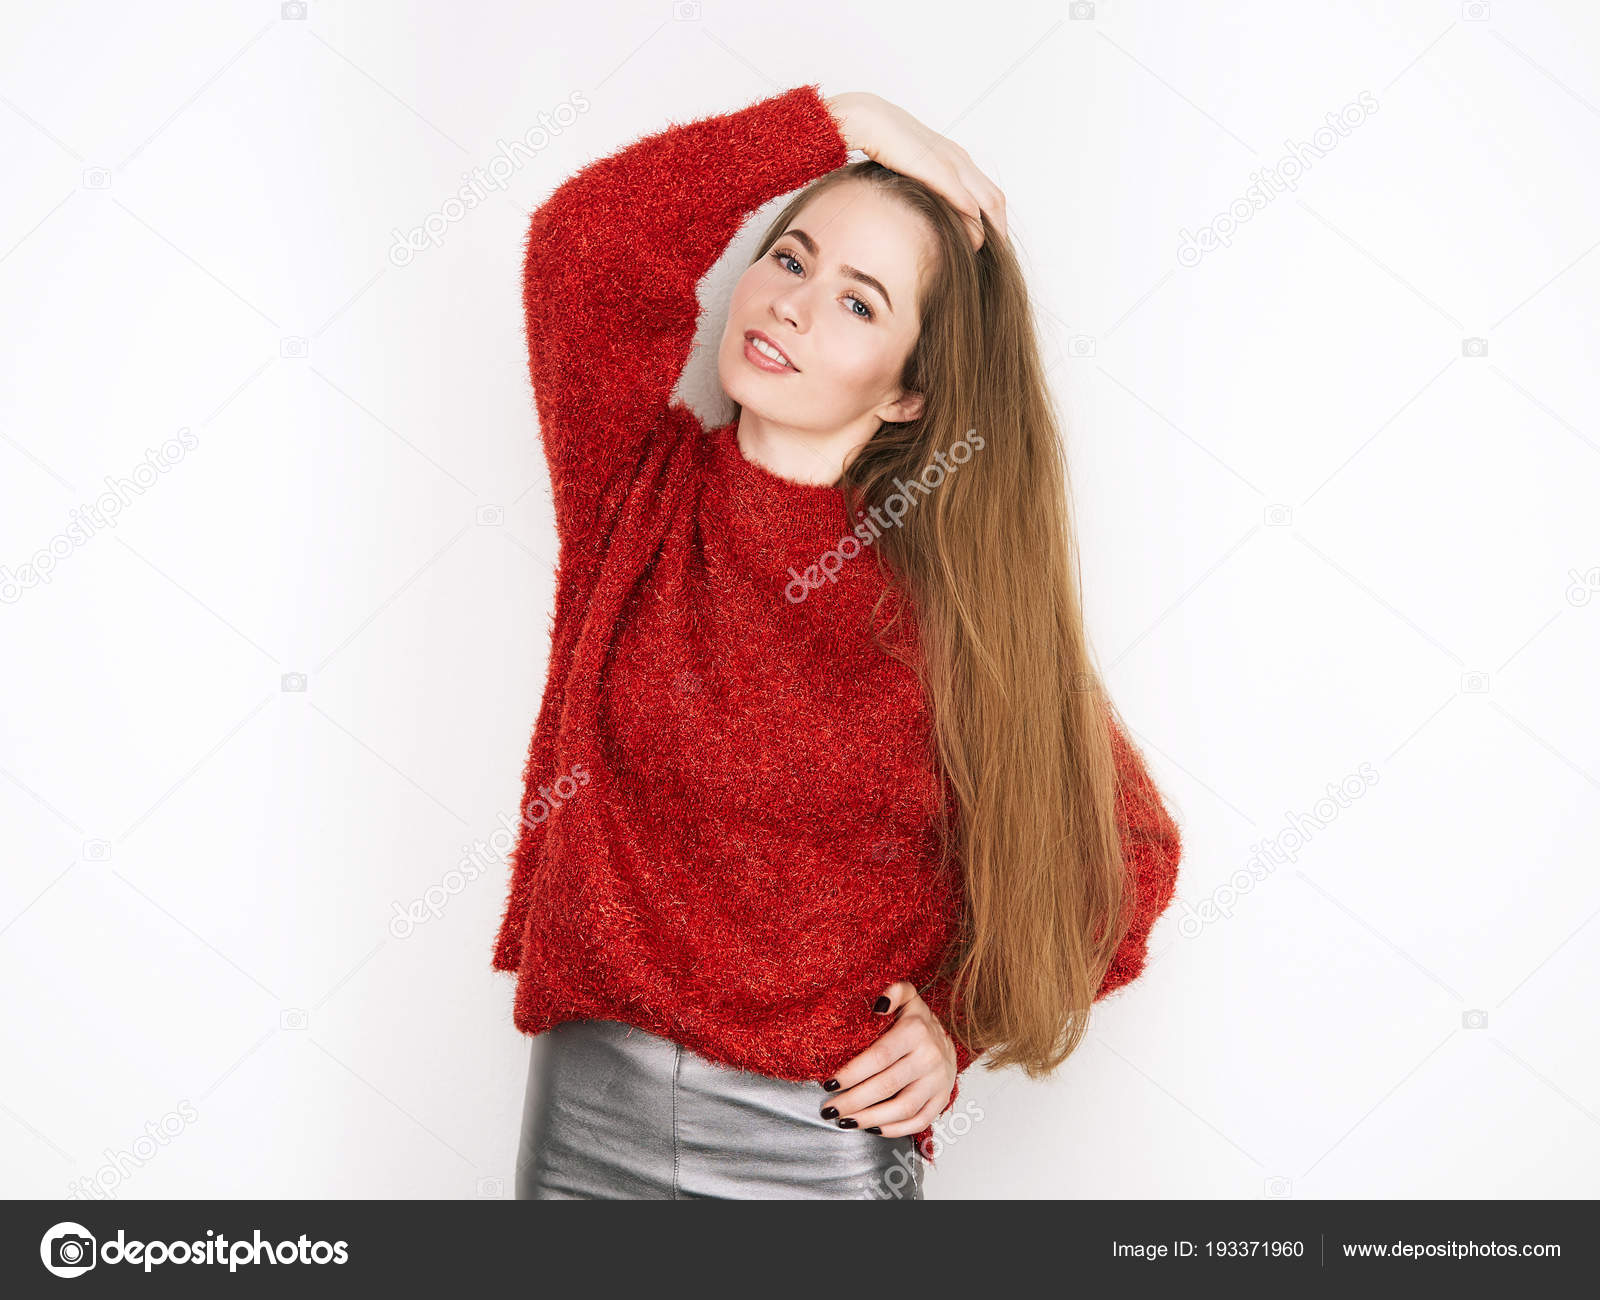 Spectacular Blonde Woman In Red Blouse Silver Leather Pants Posing